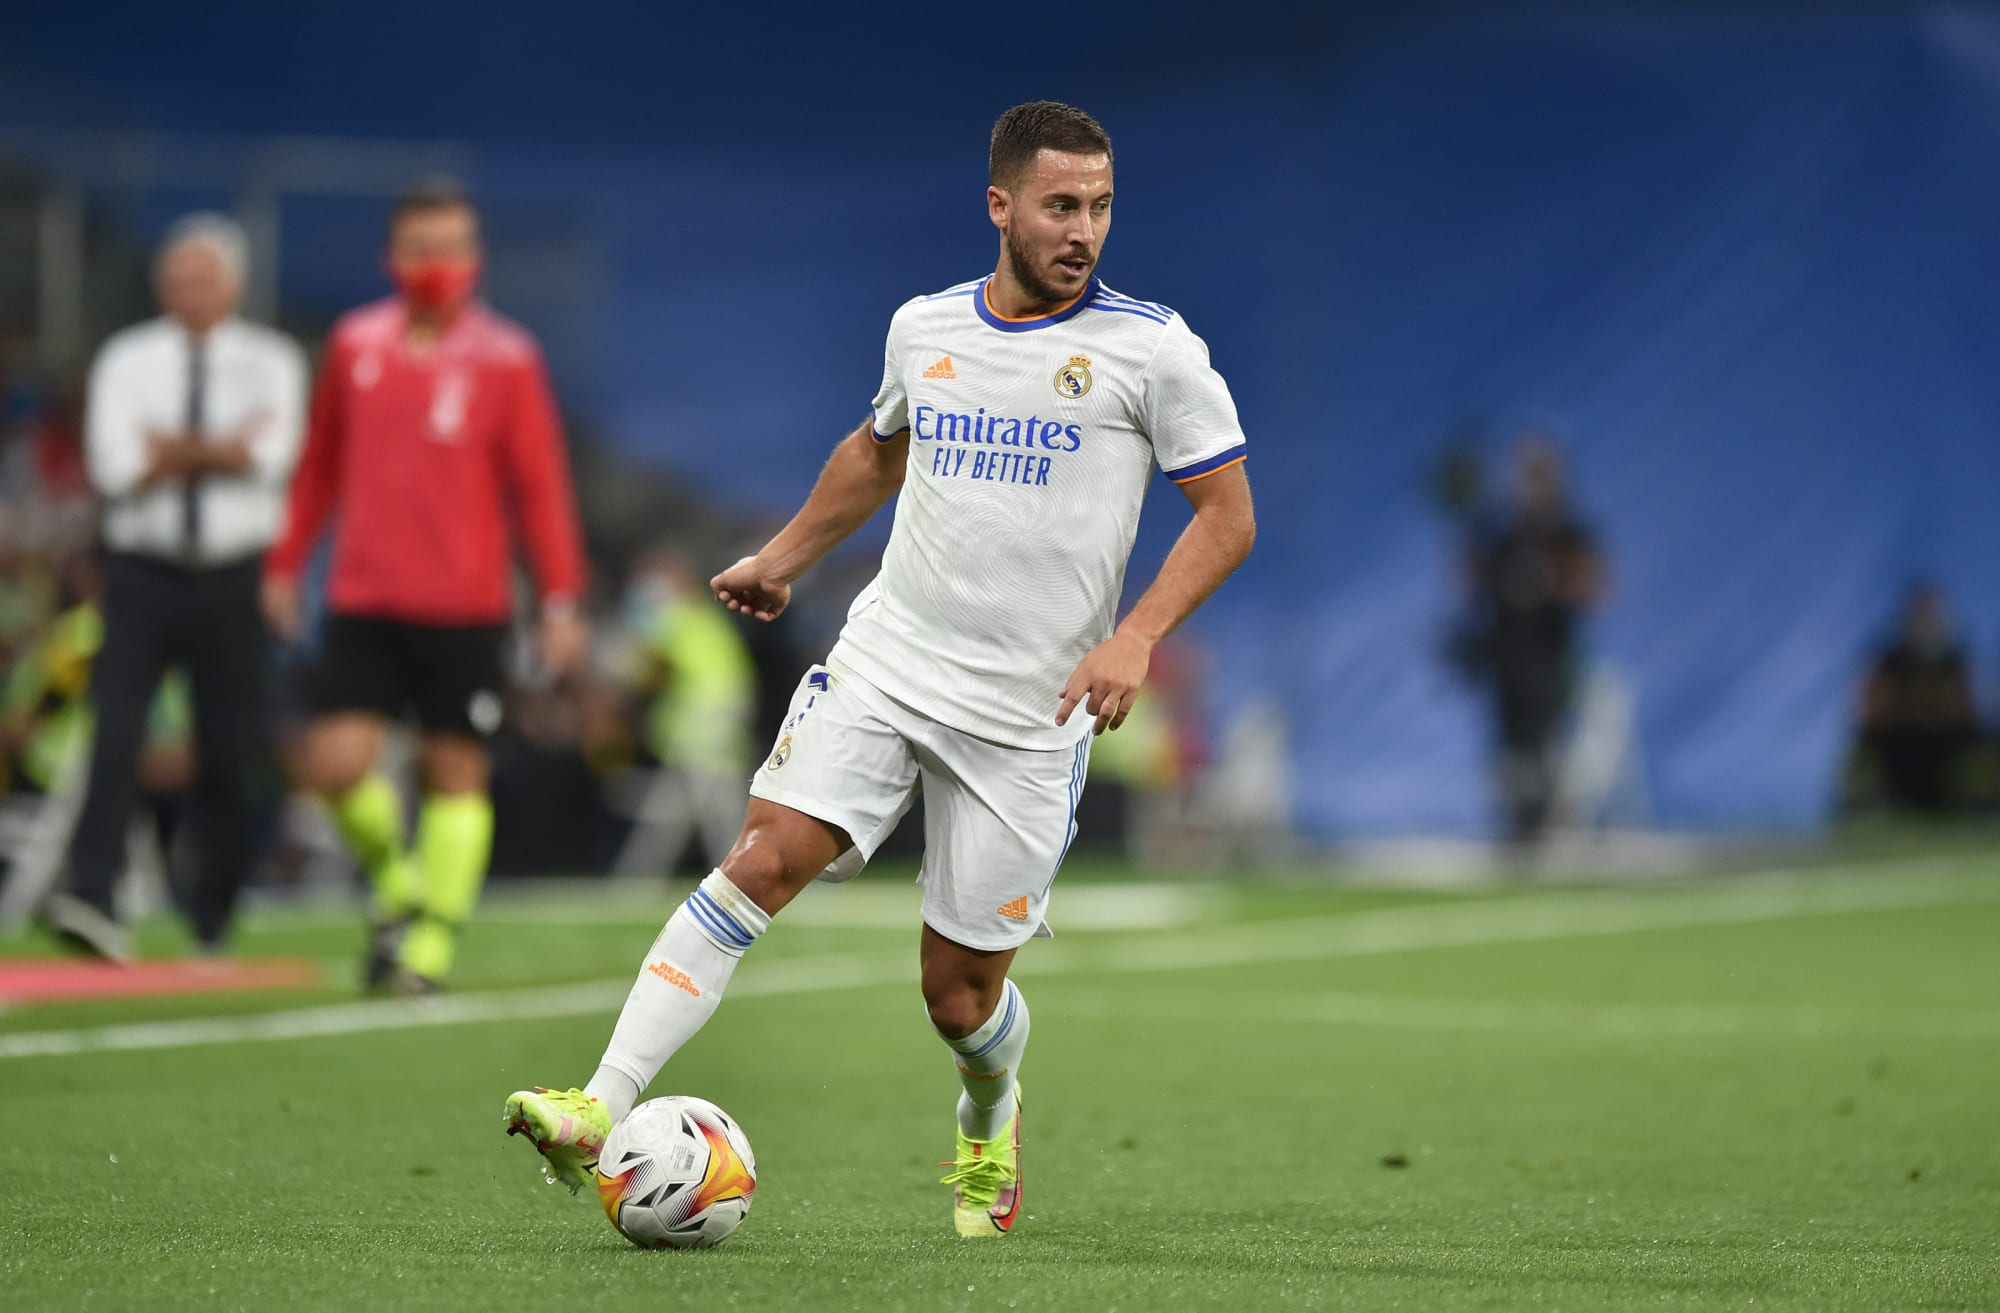 Eden Hazard has a unique role on the right side of Real Madrid's attack